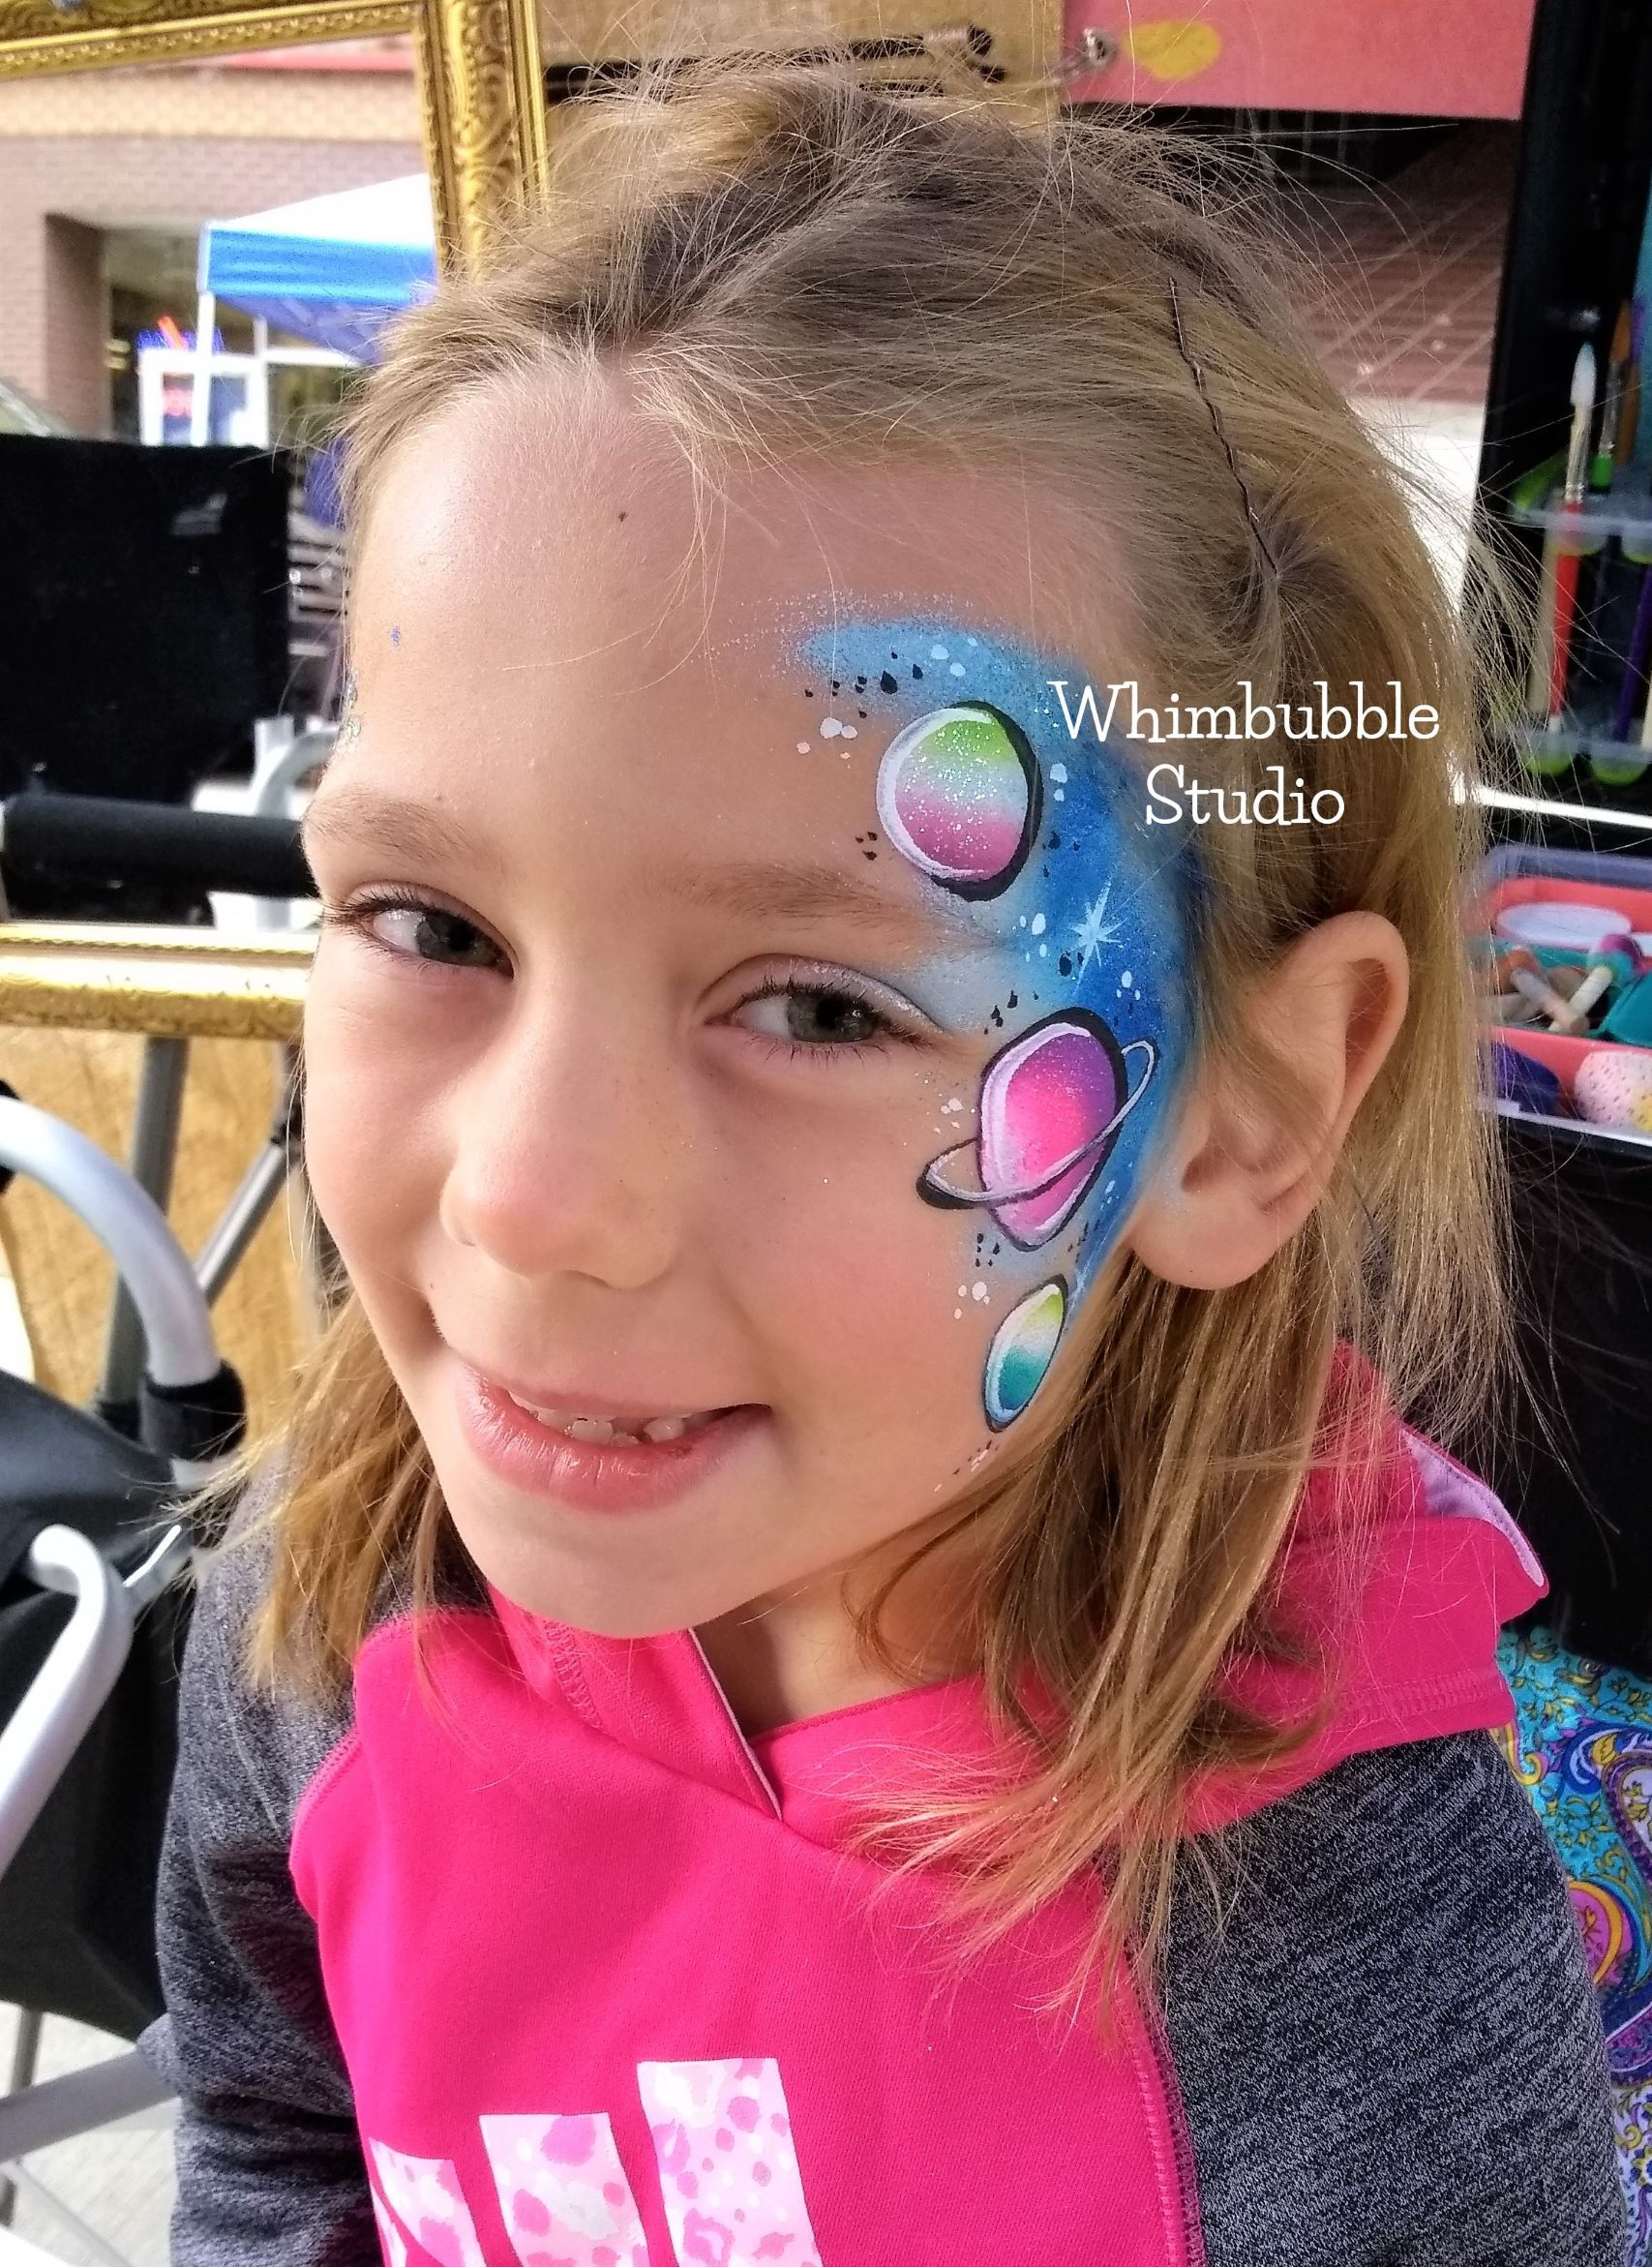 350 Face Painting Stars Space Aliens Ideas In 2021 Face Painting Face Painting Designs Face